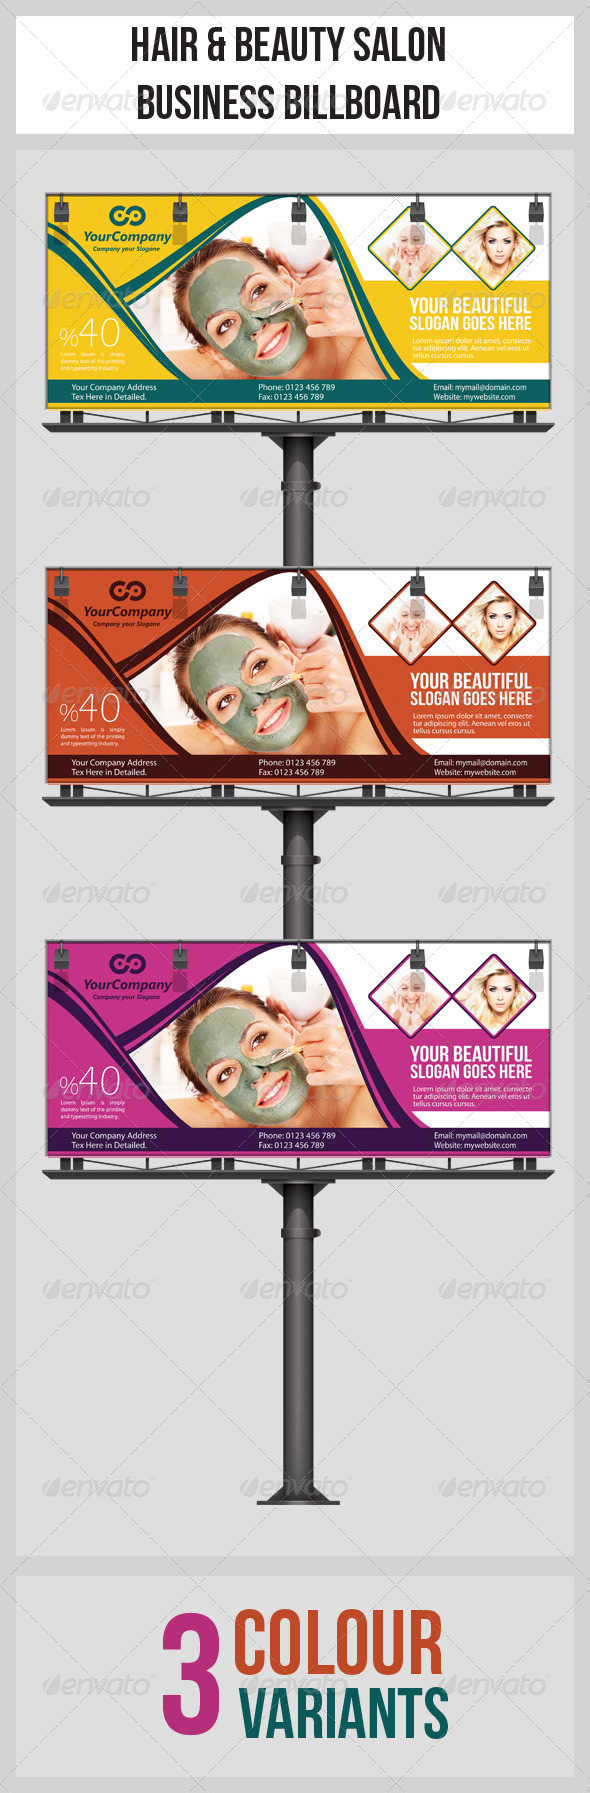 GraphicRiver Hair & Beauty Salon Business Billboard 4720336